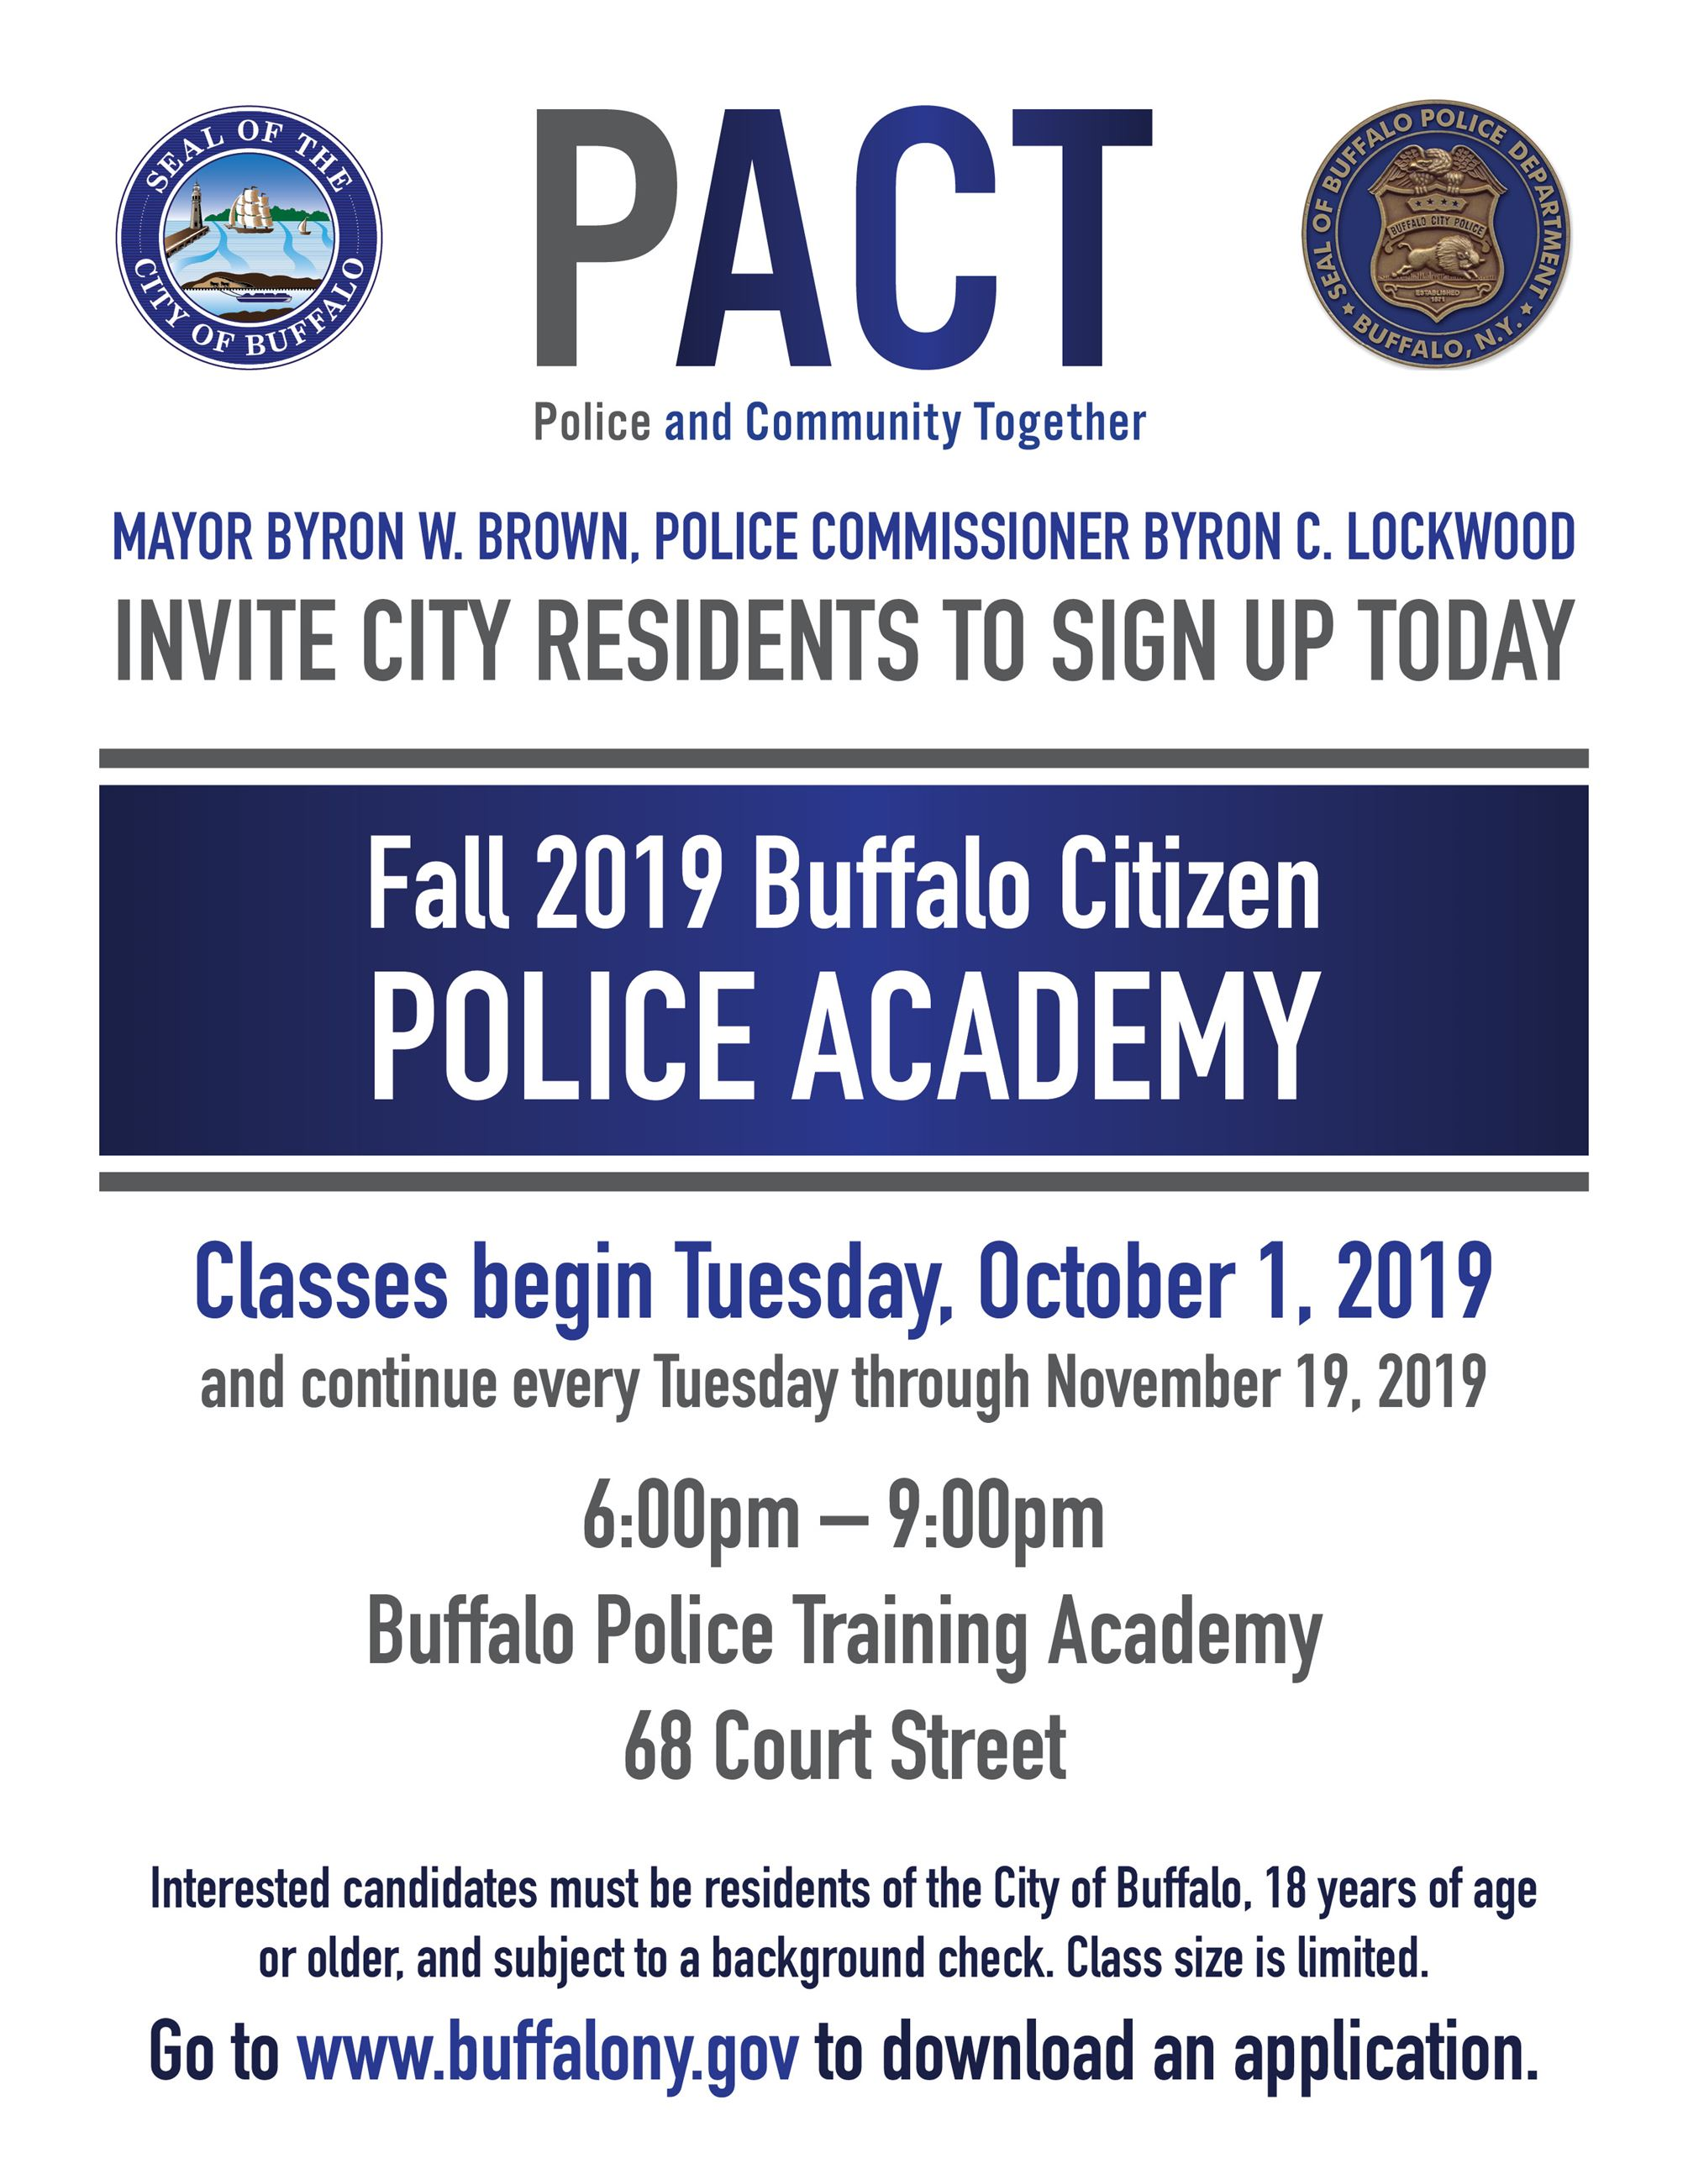 PACT-Flyer-Fall2019